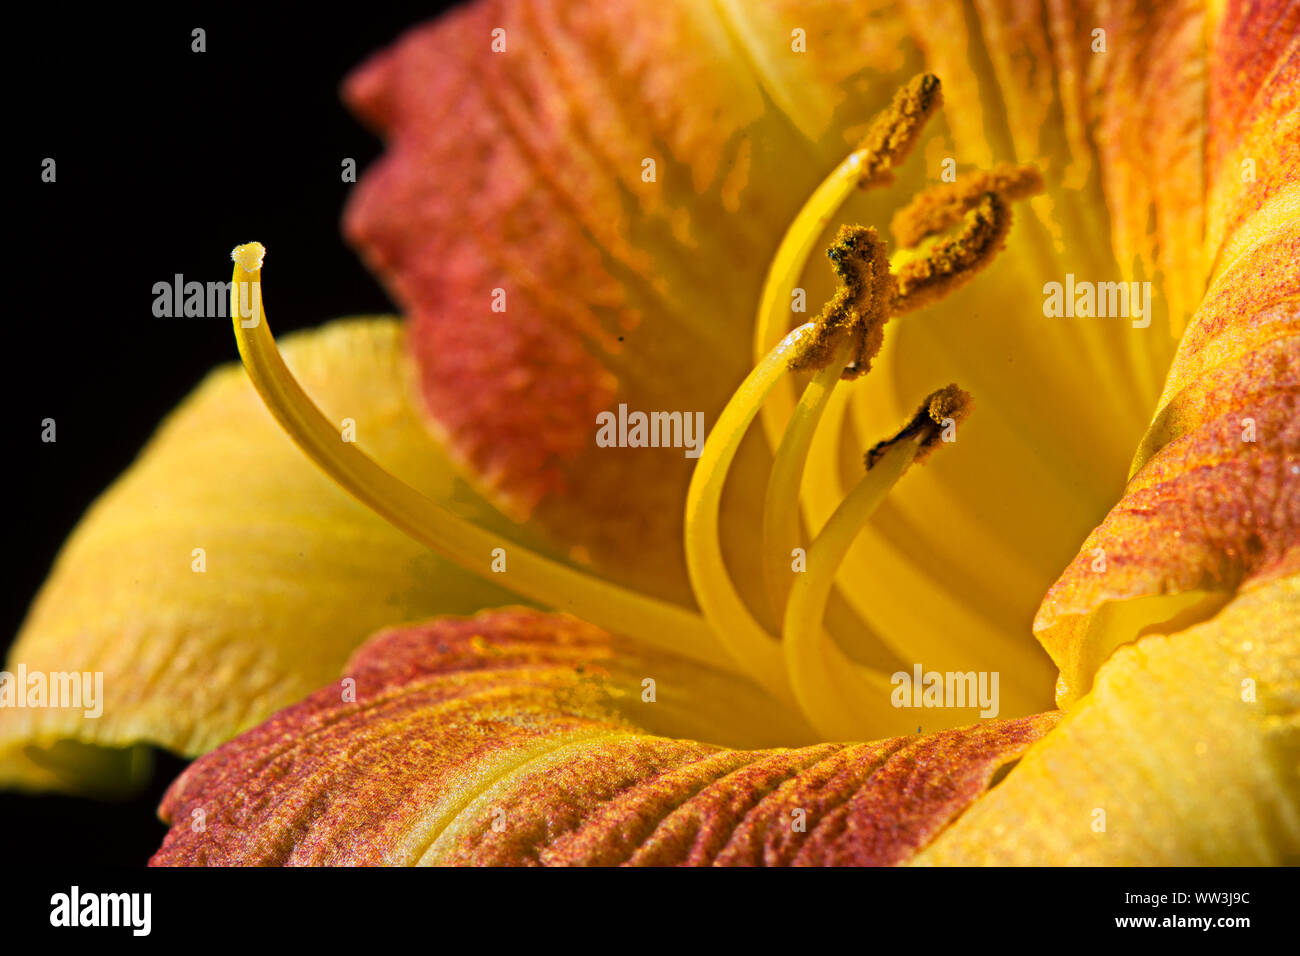 Close up macro image of day lily in full bloom. Polination taking place. Stock Photo